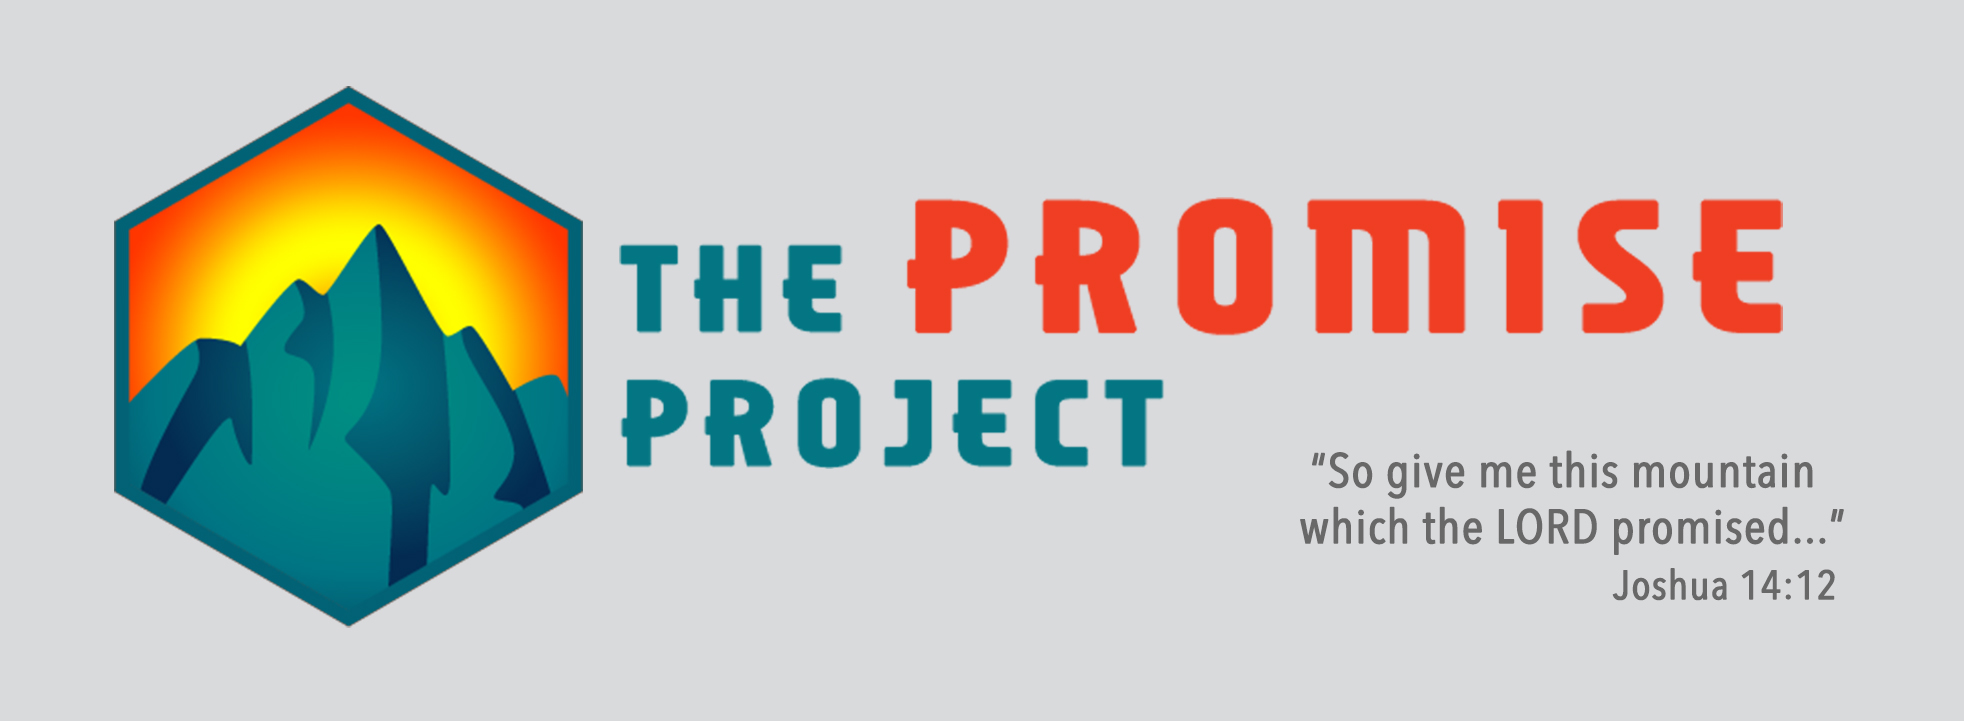 The Promise Project-1964×721